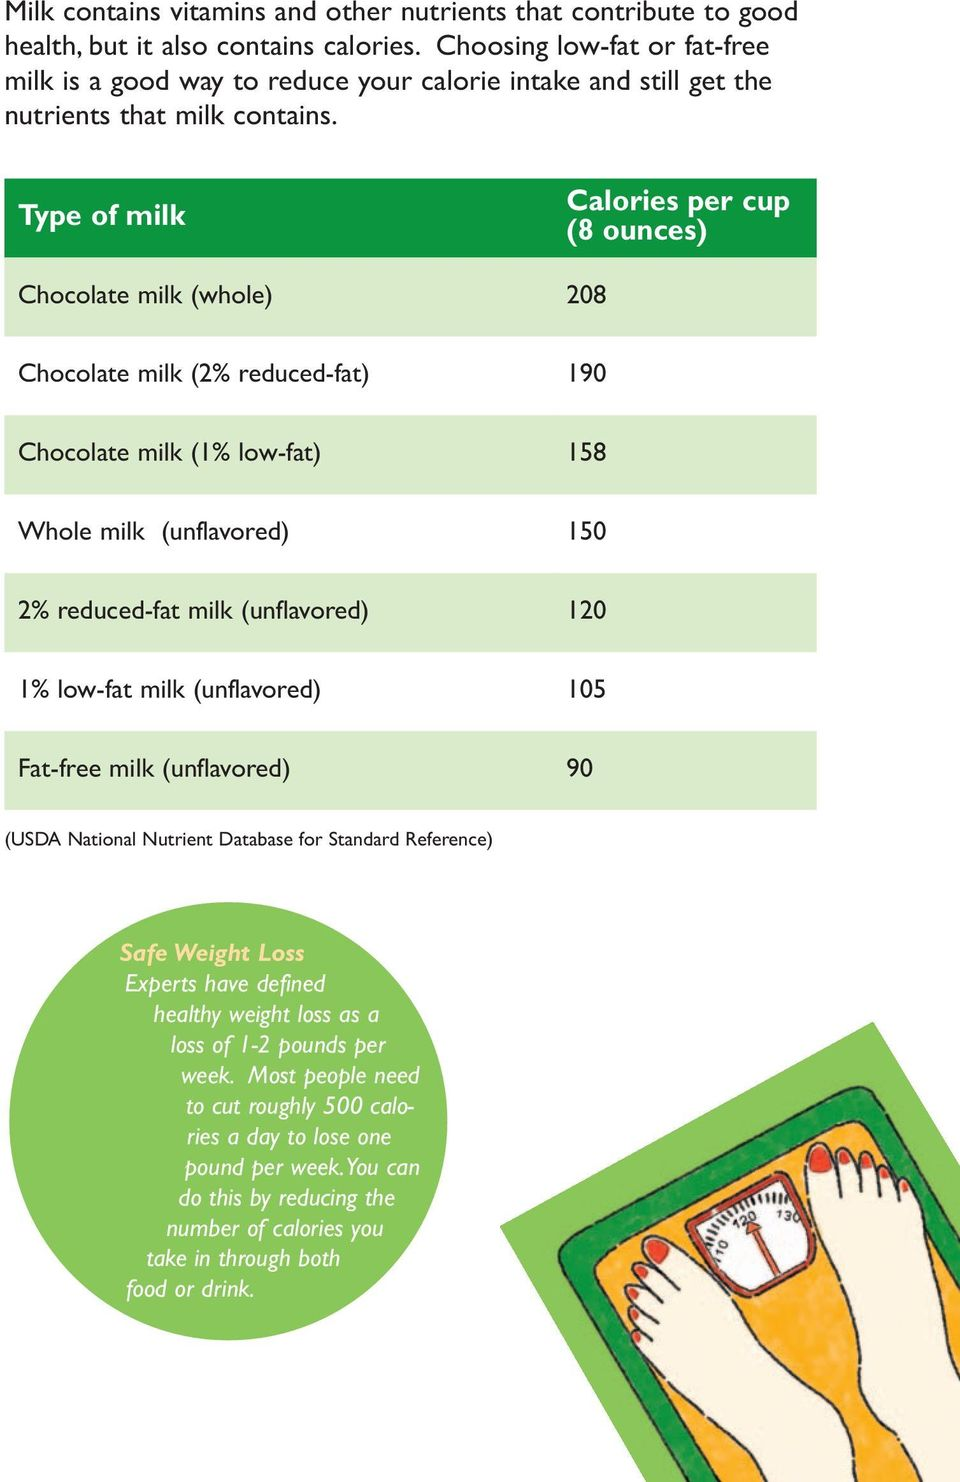 Type of milk Calories per cup (8 ounces) Chocolate milk (whole) 208 Chocolate milk (2% reduced-fat) 190 Chocolate milk (1% low-fat) 158 Whole milk (unflavored) 150 2% reduced-fat milk (unflavored)